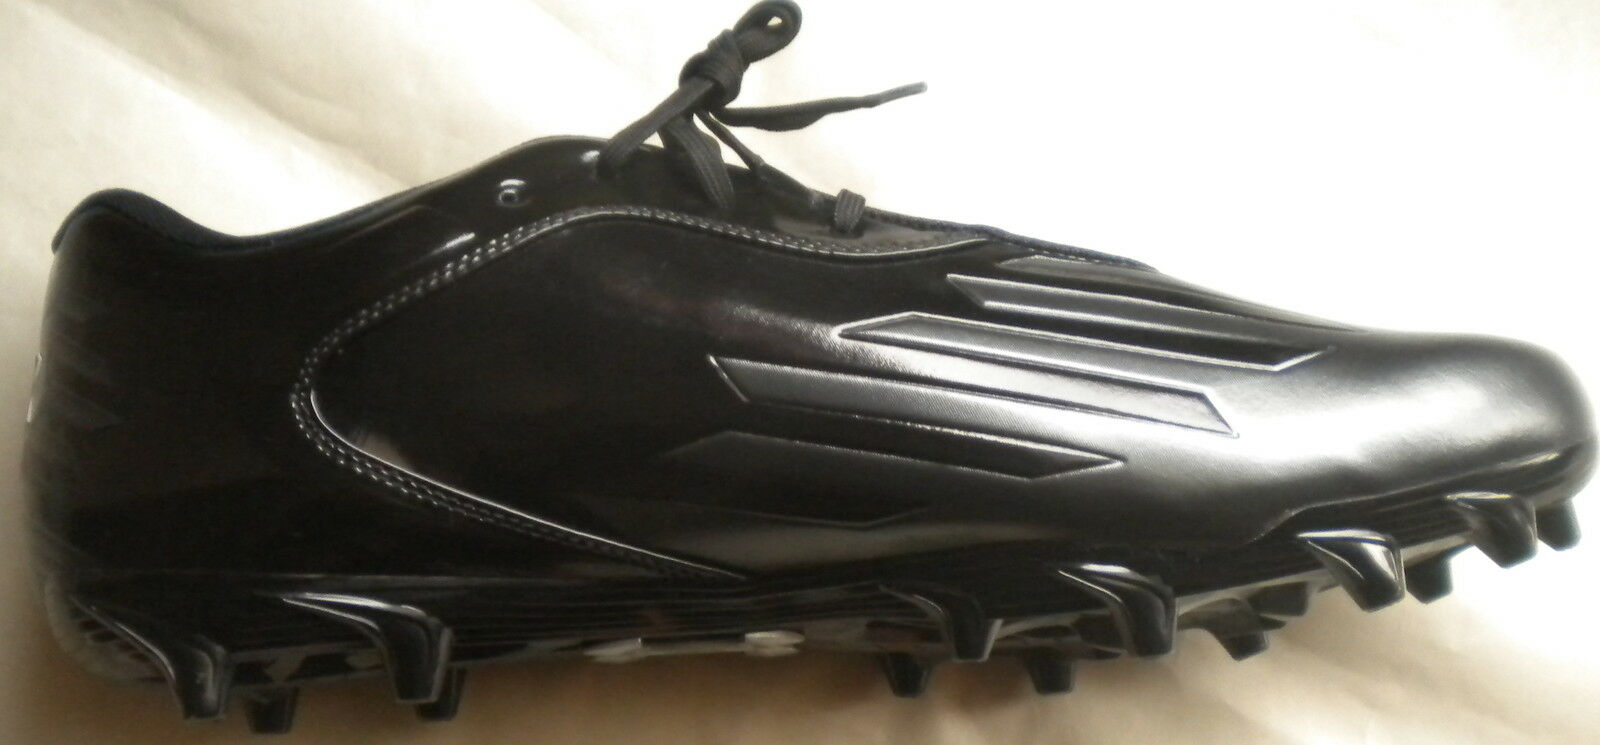 NEW UNDER D ARMOUR MEN DIABLO LOW D UNDER BLACK FOOTBALL CLEATS SHOES 1226964-001 16 ef7f39